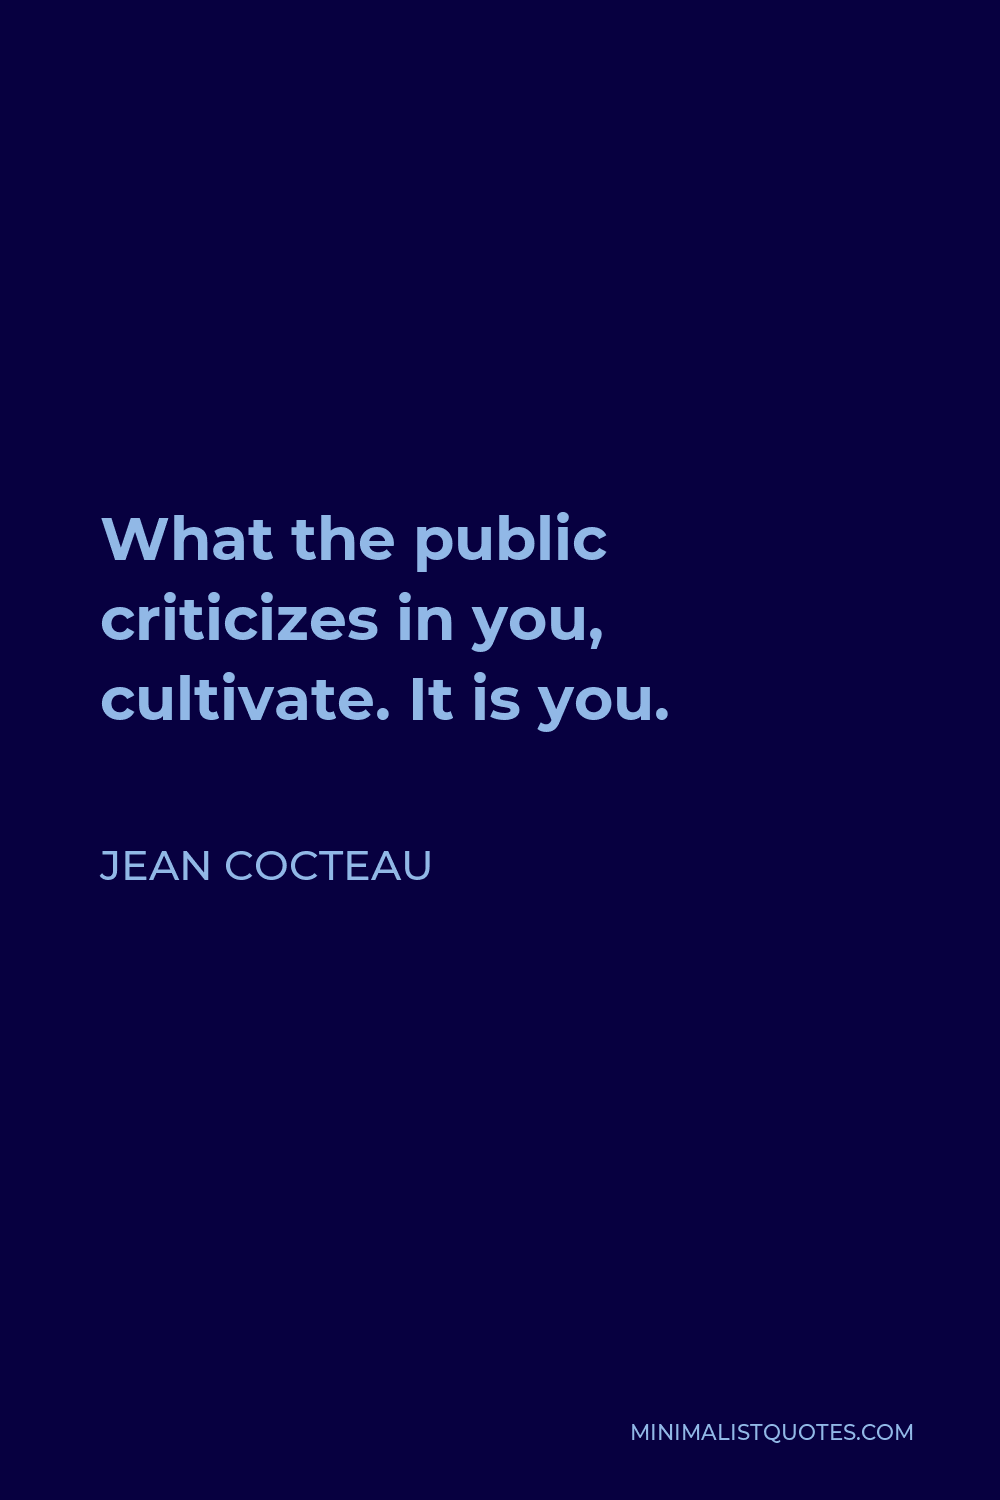 Jean Cocteau Quote - What the public criticizes in you, cultivate. It is you.